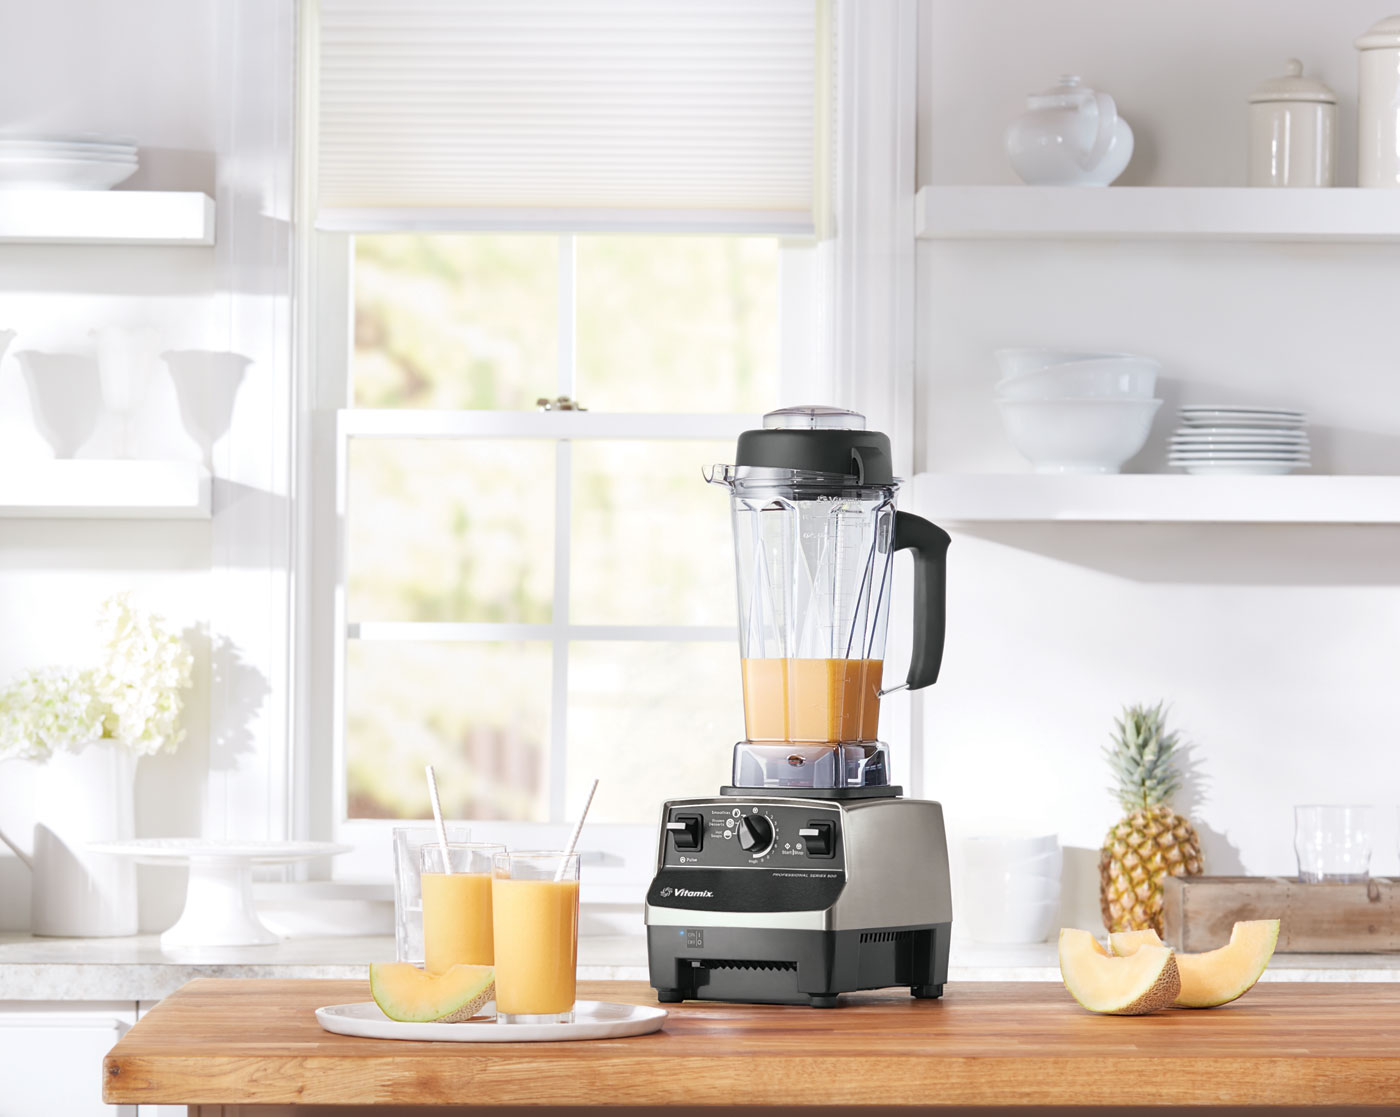 city style and living magazine Vitamix blender smoothie